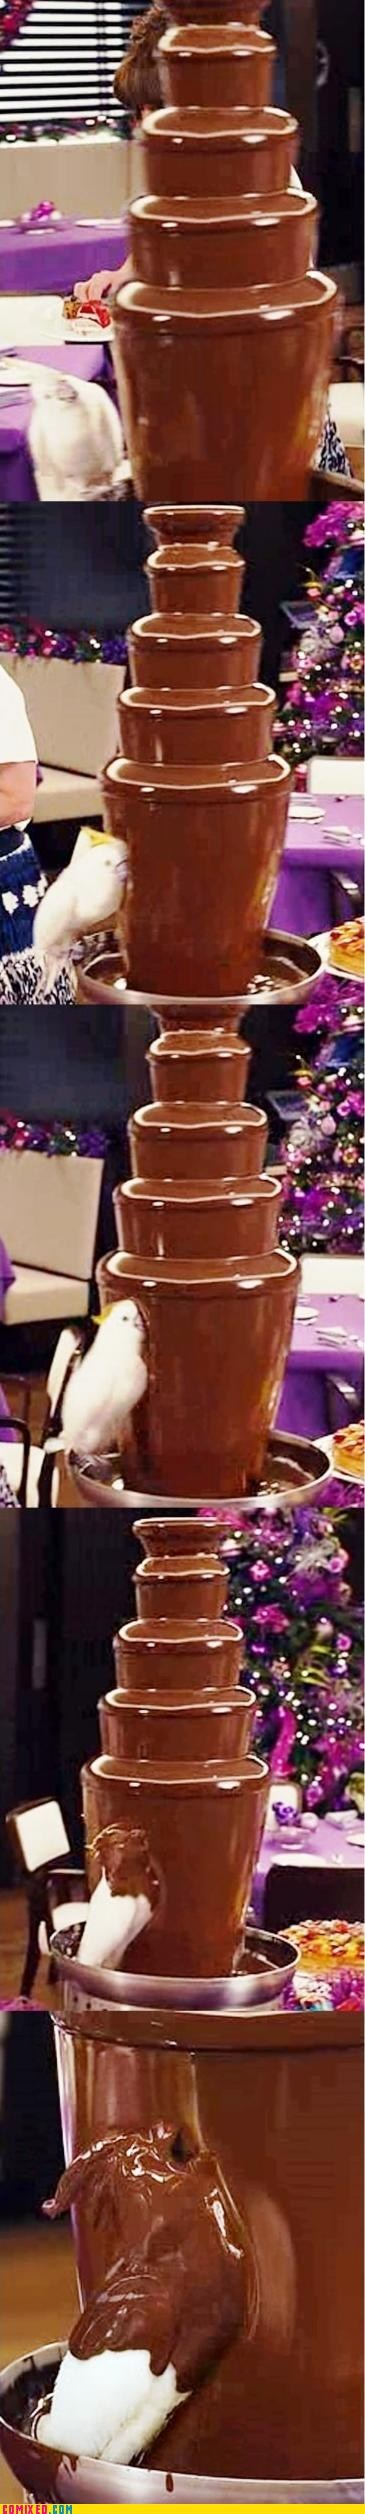 animals best of week bird chocolate chocolate fountain funny Memes omg pets - 5885667584